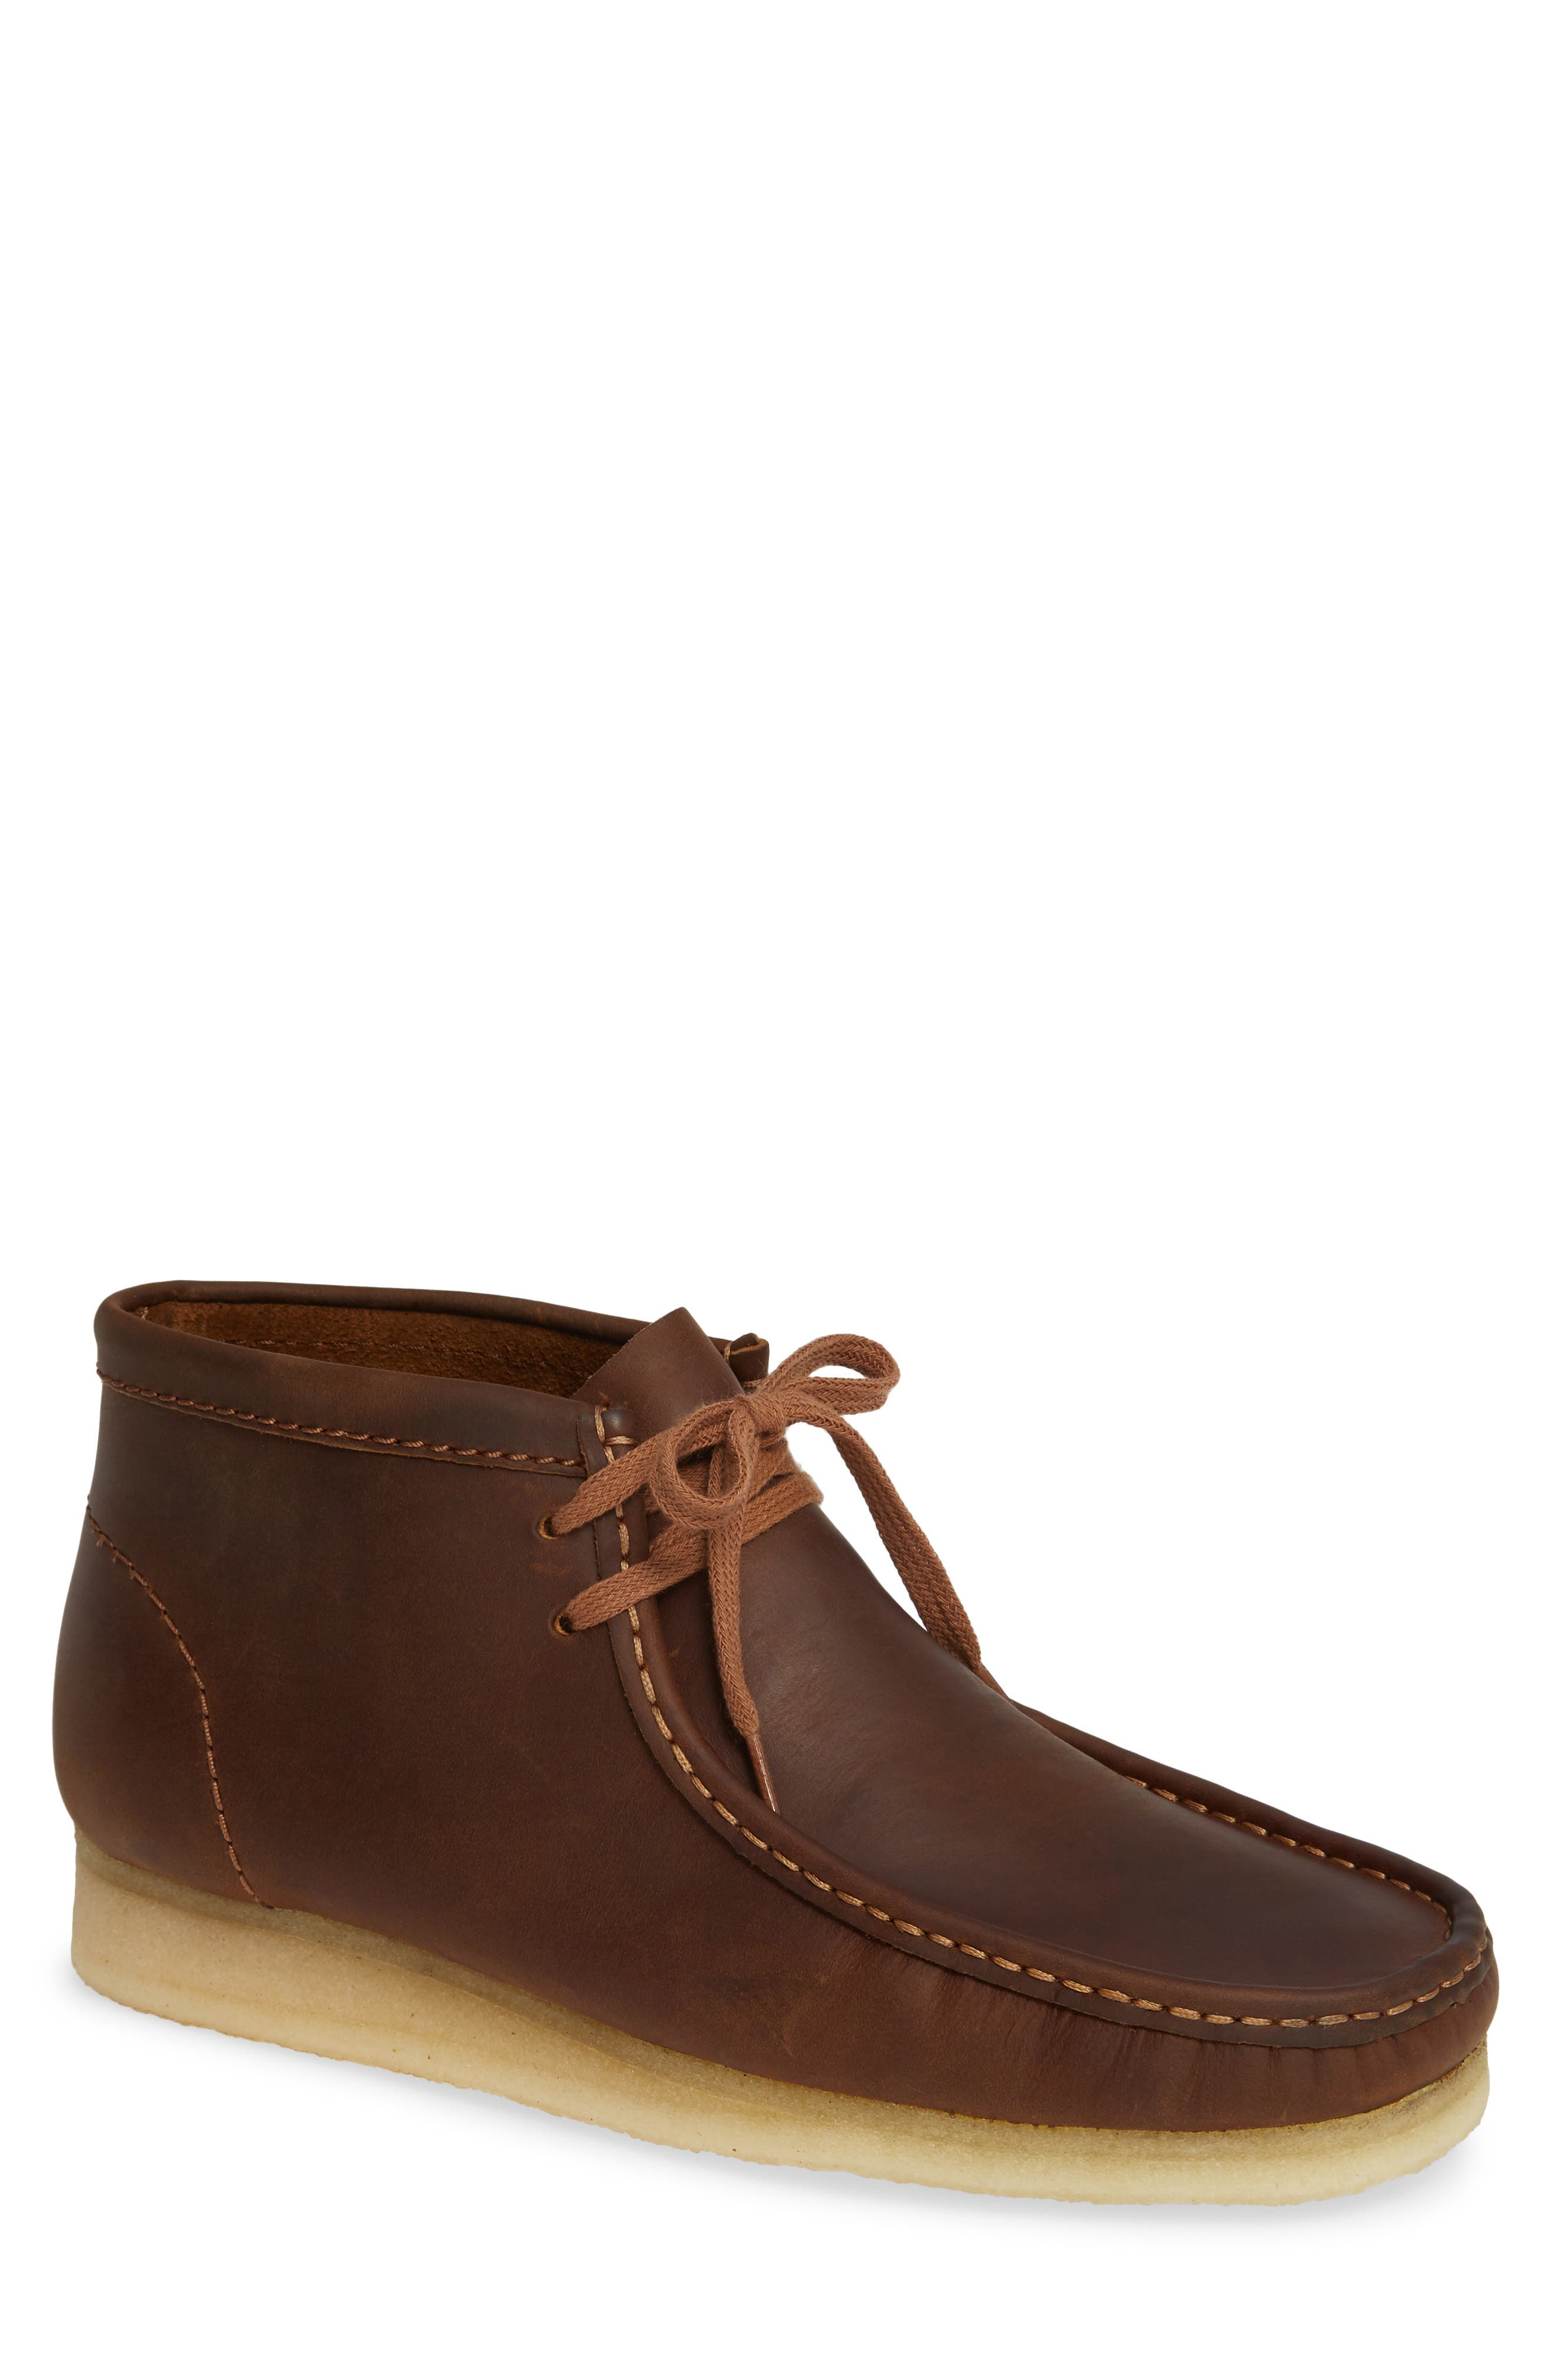 Wallabee Boot,                         Main,                         color, BROWN LEATHER